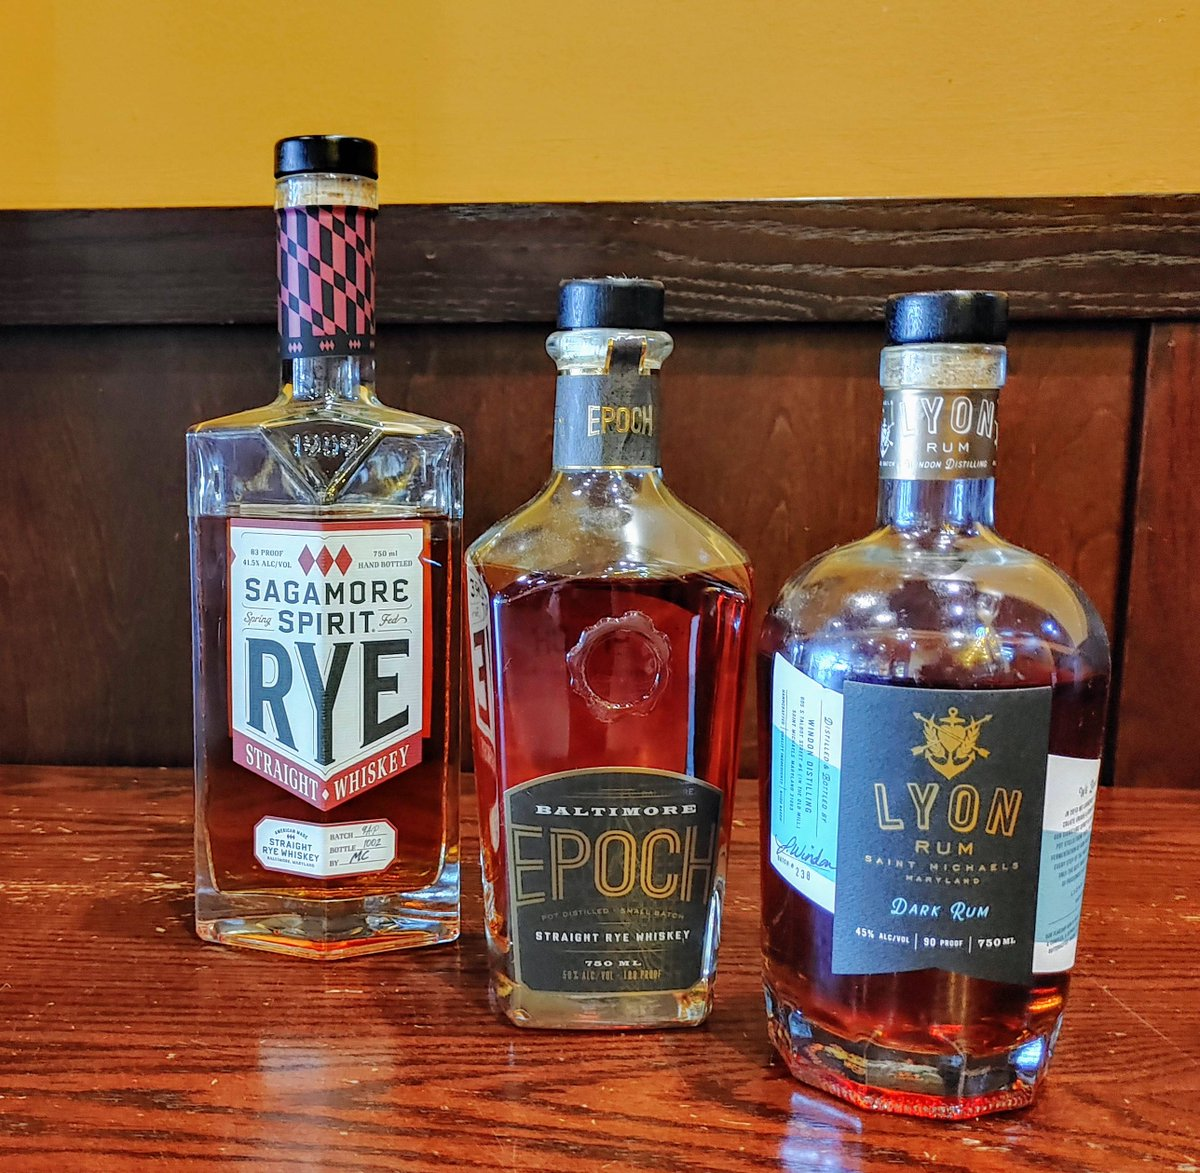 Welcome Back WHISKEY WEDNESDAY (with a twist). Craft Cocktails to go!   We are featuring local distilleries AND a RUM! Sagamore Spirit, Baltimore Spirits Company, and LYON RUM.  Ryes Up with Epoch Rye, Baltimore Old Fashioned with Sagamore, Bay and Stormy with Lyon Dark! https://t.co/UW1AzrWJtL